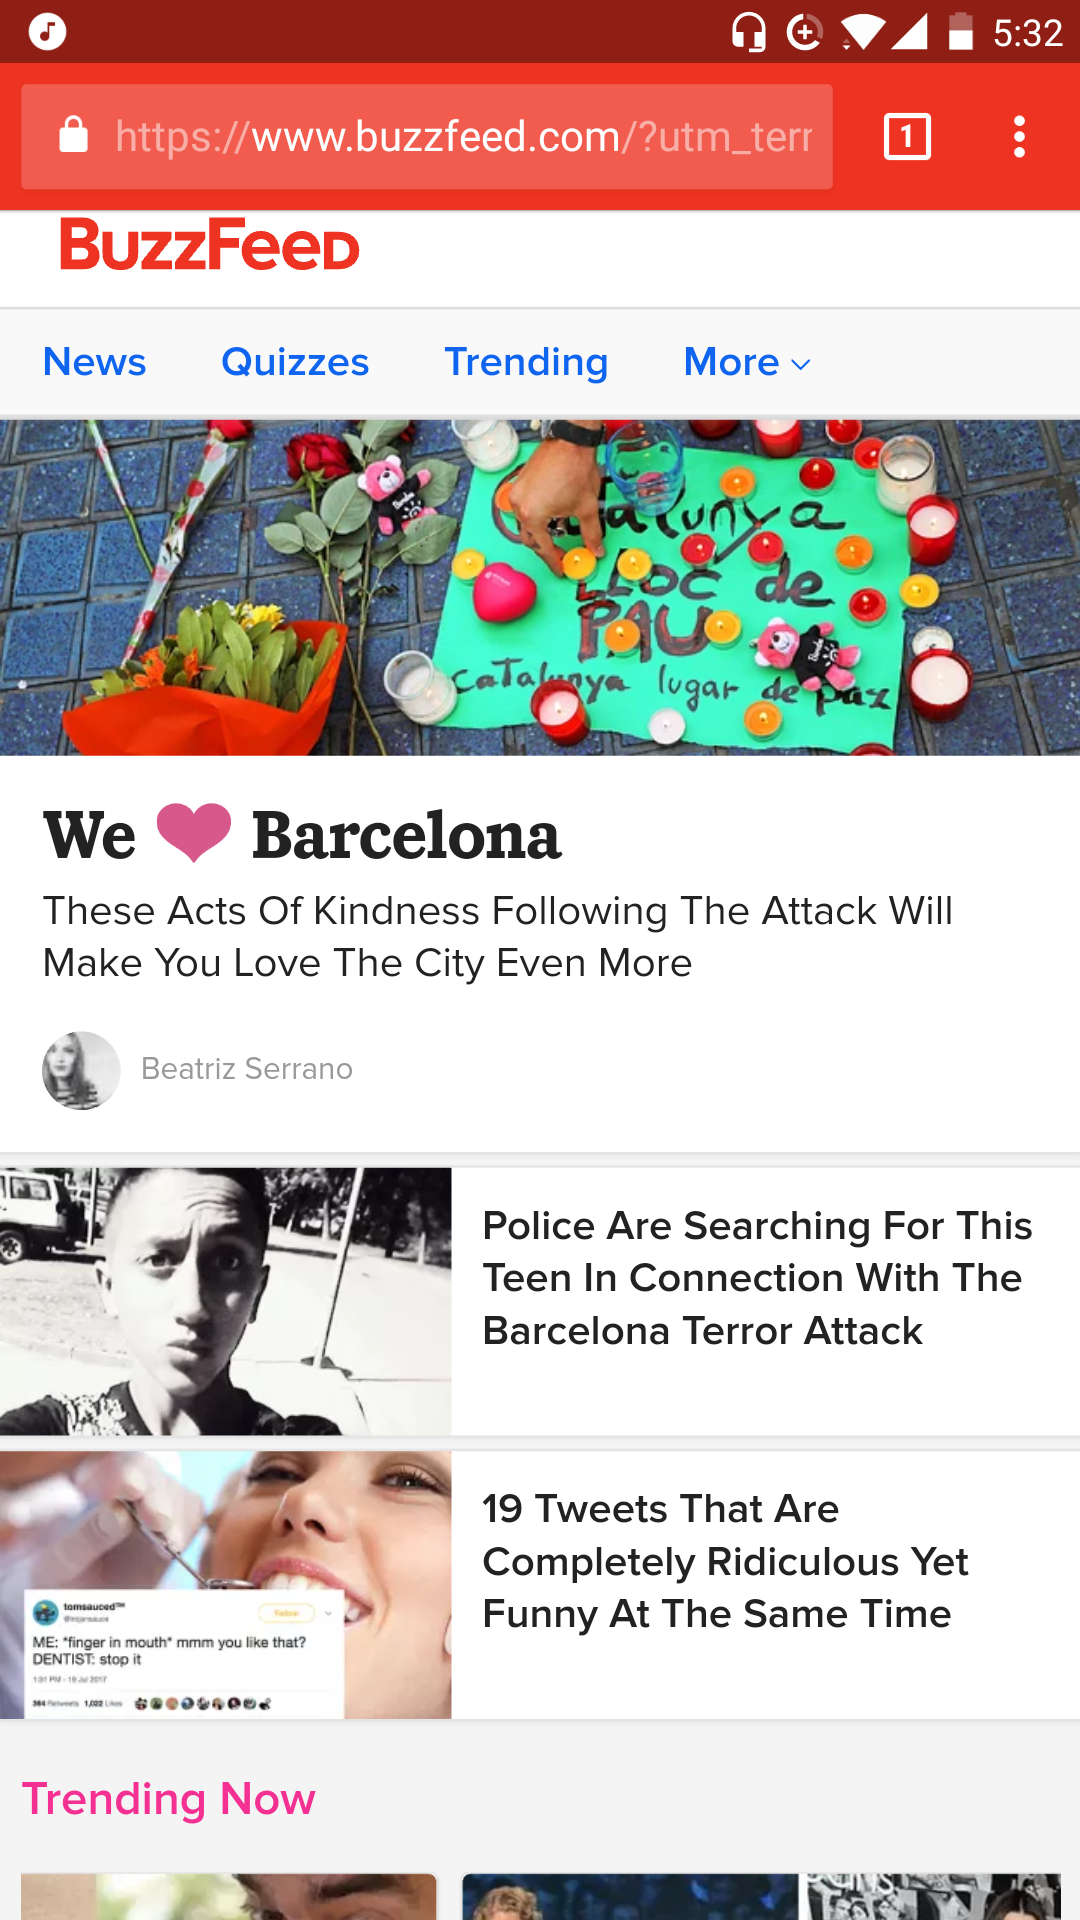 Buzzfeed's Mobile Design